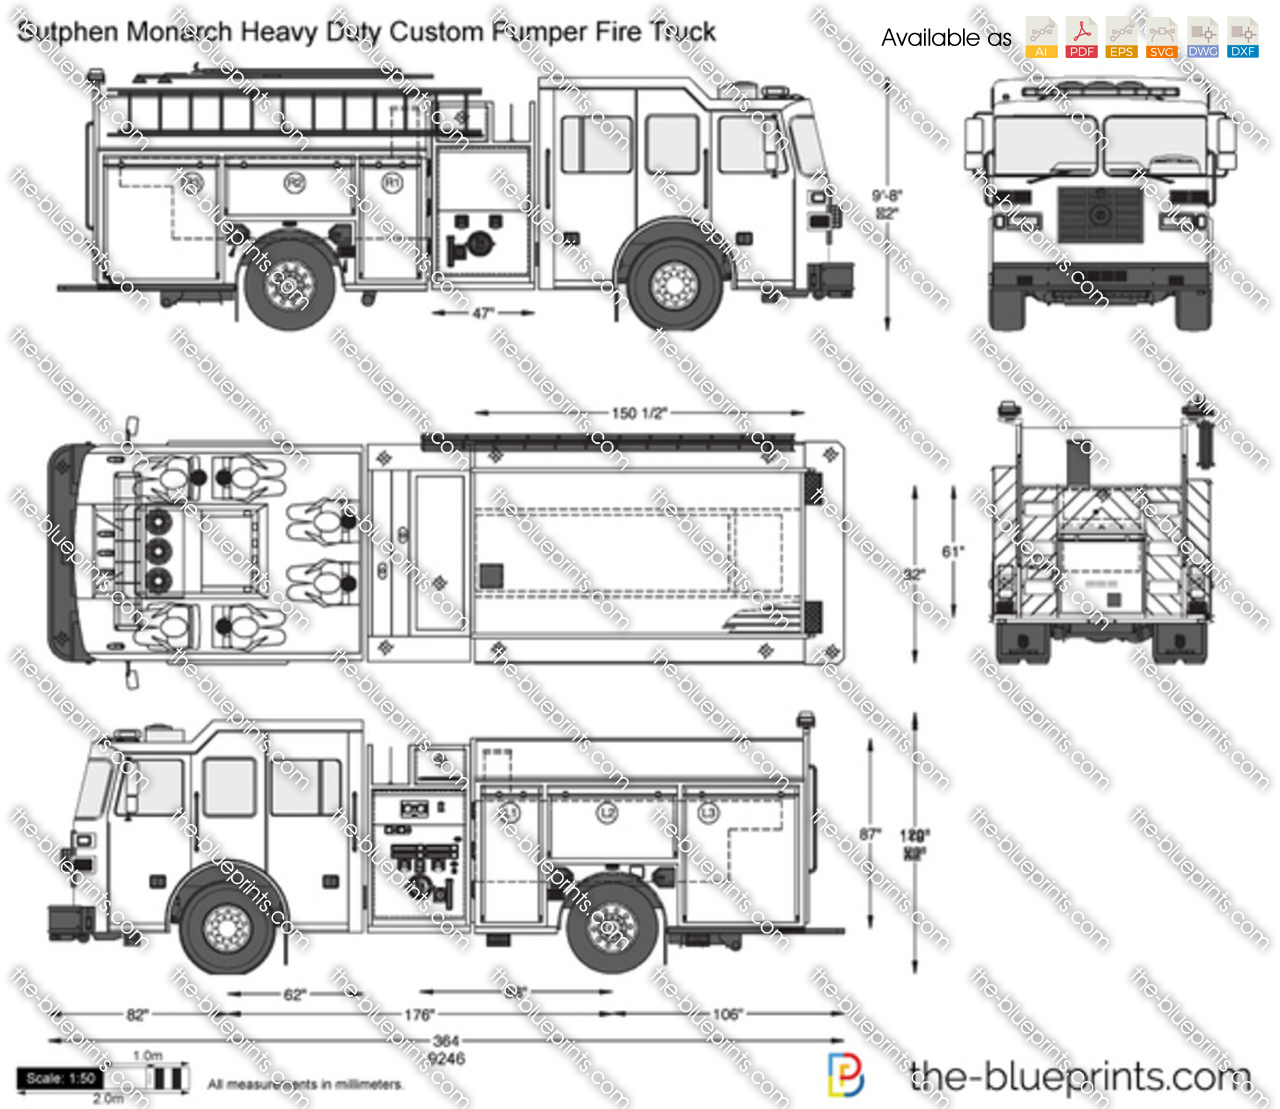 Sutphen monarch heavy duty custom pumper fire truck vector for Custom blueprints